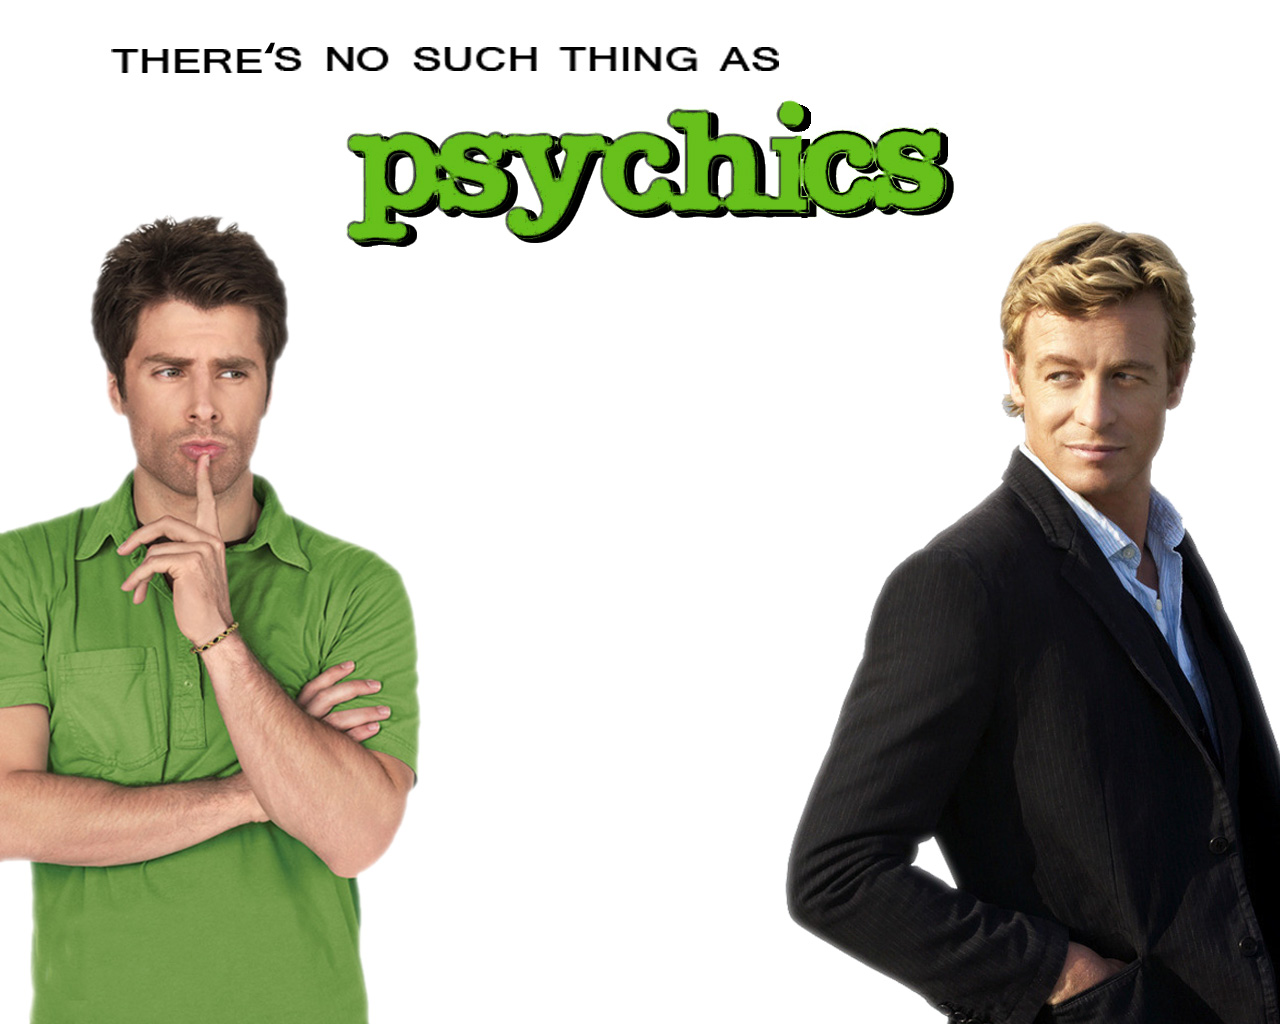 Could there be a crossover episode between CBS The Mentalist and USA Psych?